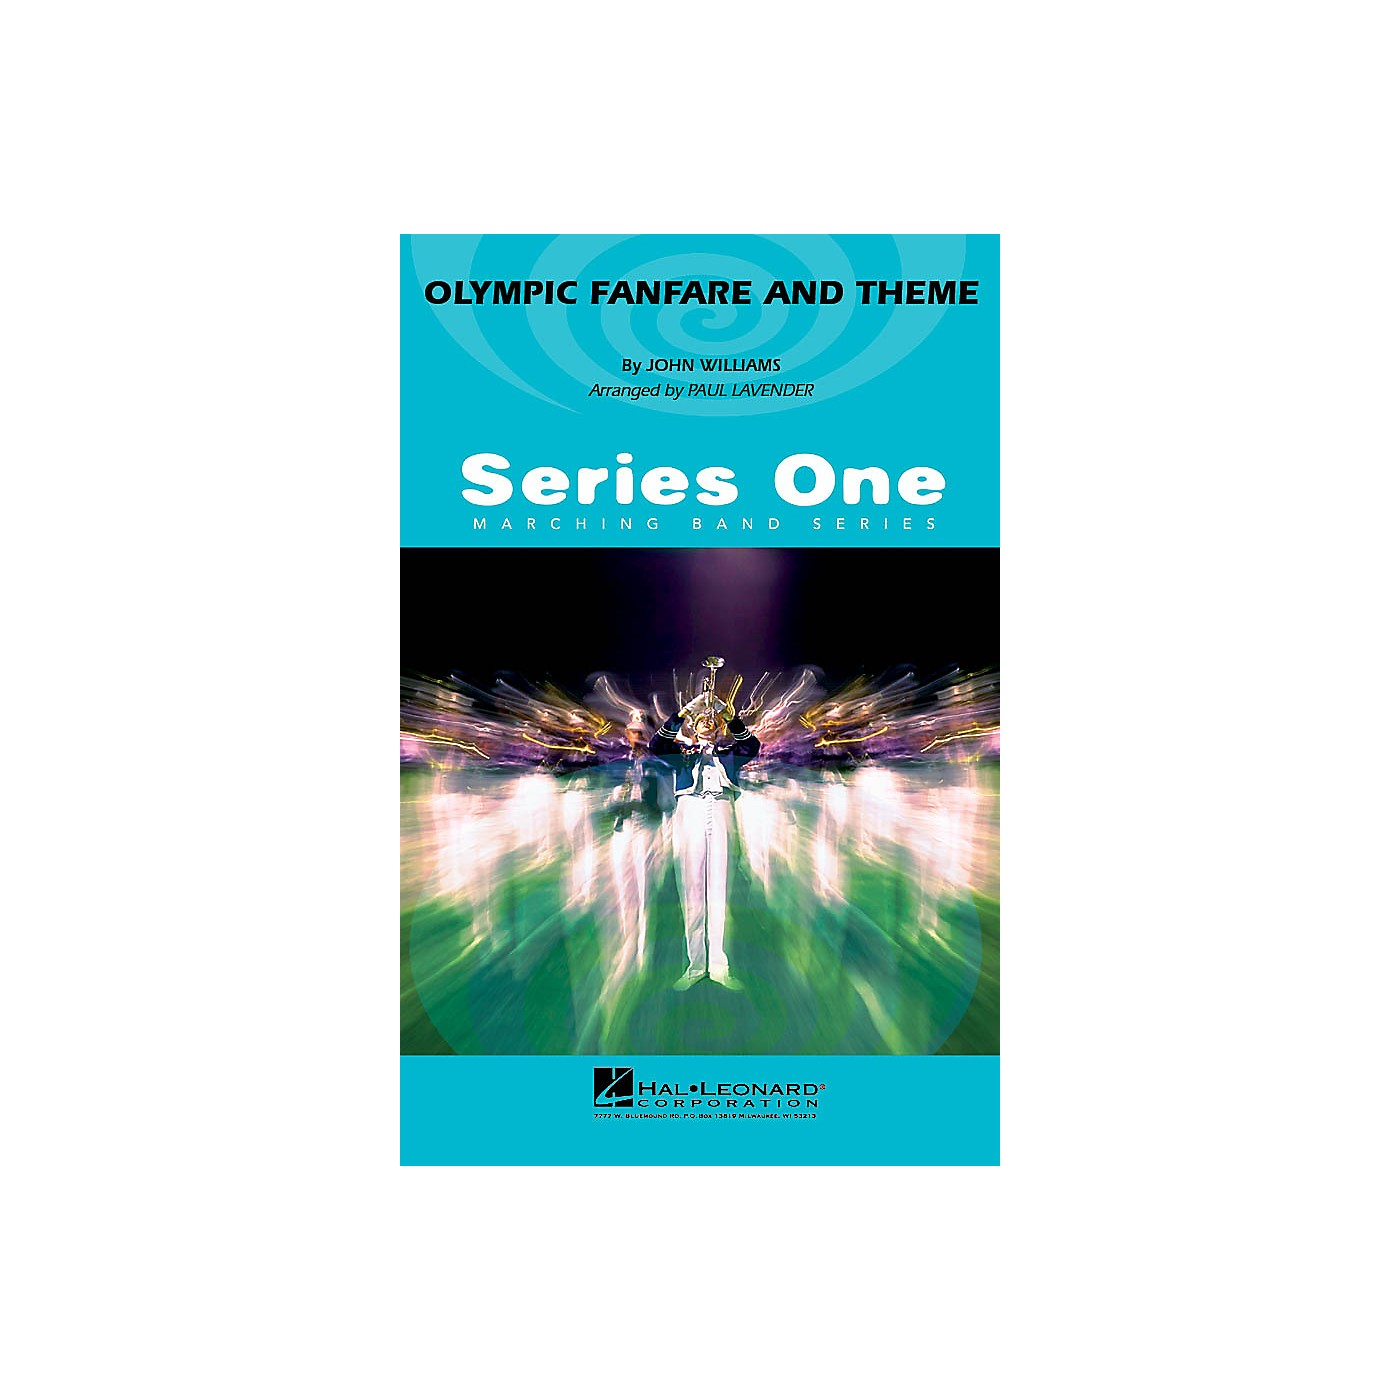 Hal Leonard Olympic Fanfare and Theme Marching Band Level 2-3 Arranged by Paul Lavender thumbnail